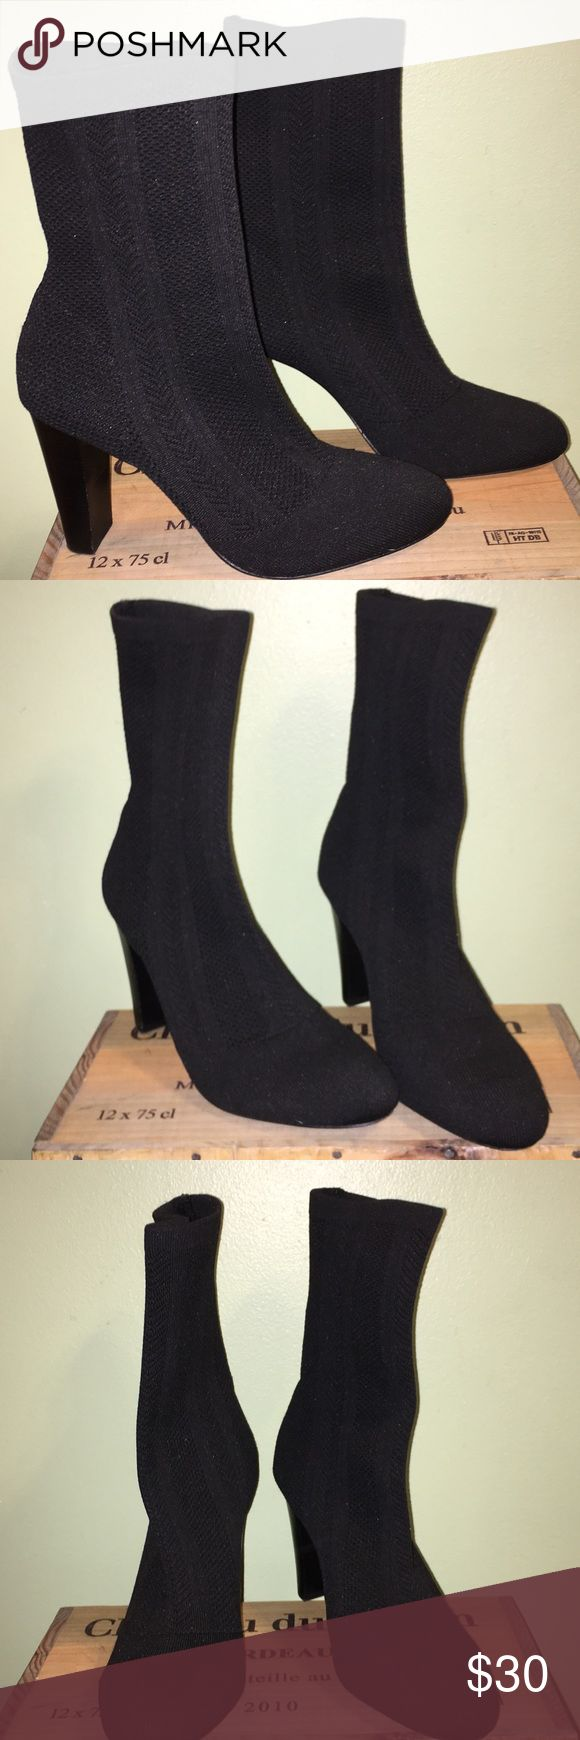 Charles by Charles David Shirley - Sz 9 Like new condition, only worn a few times. Charles David Shoes Ankle Boots & Booties